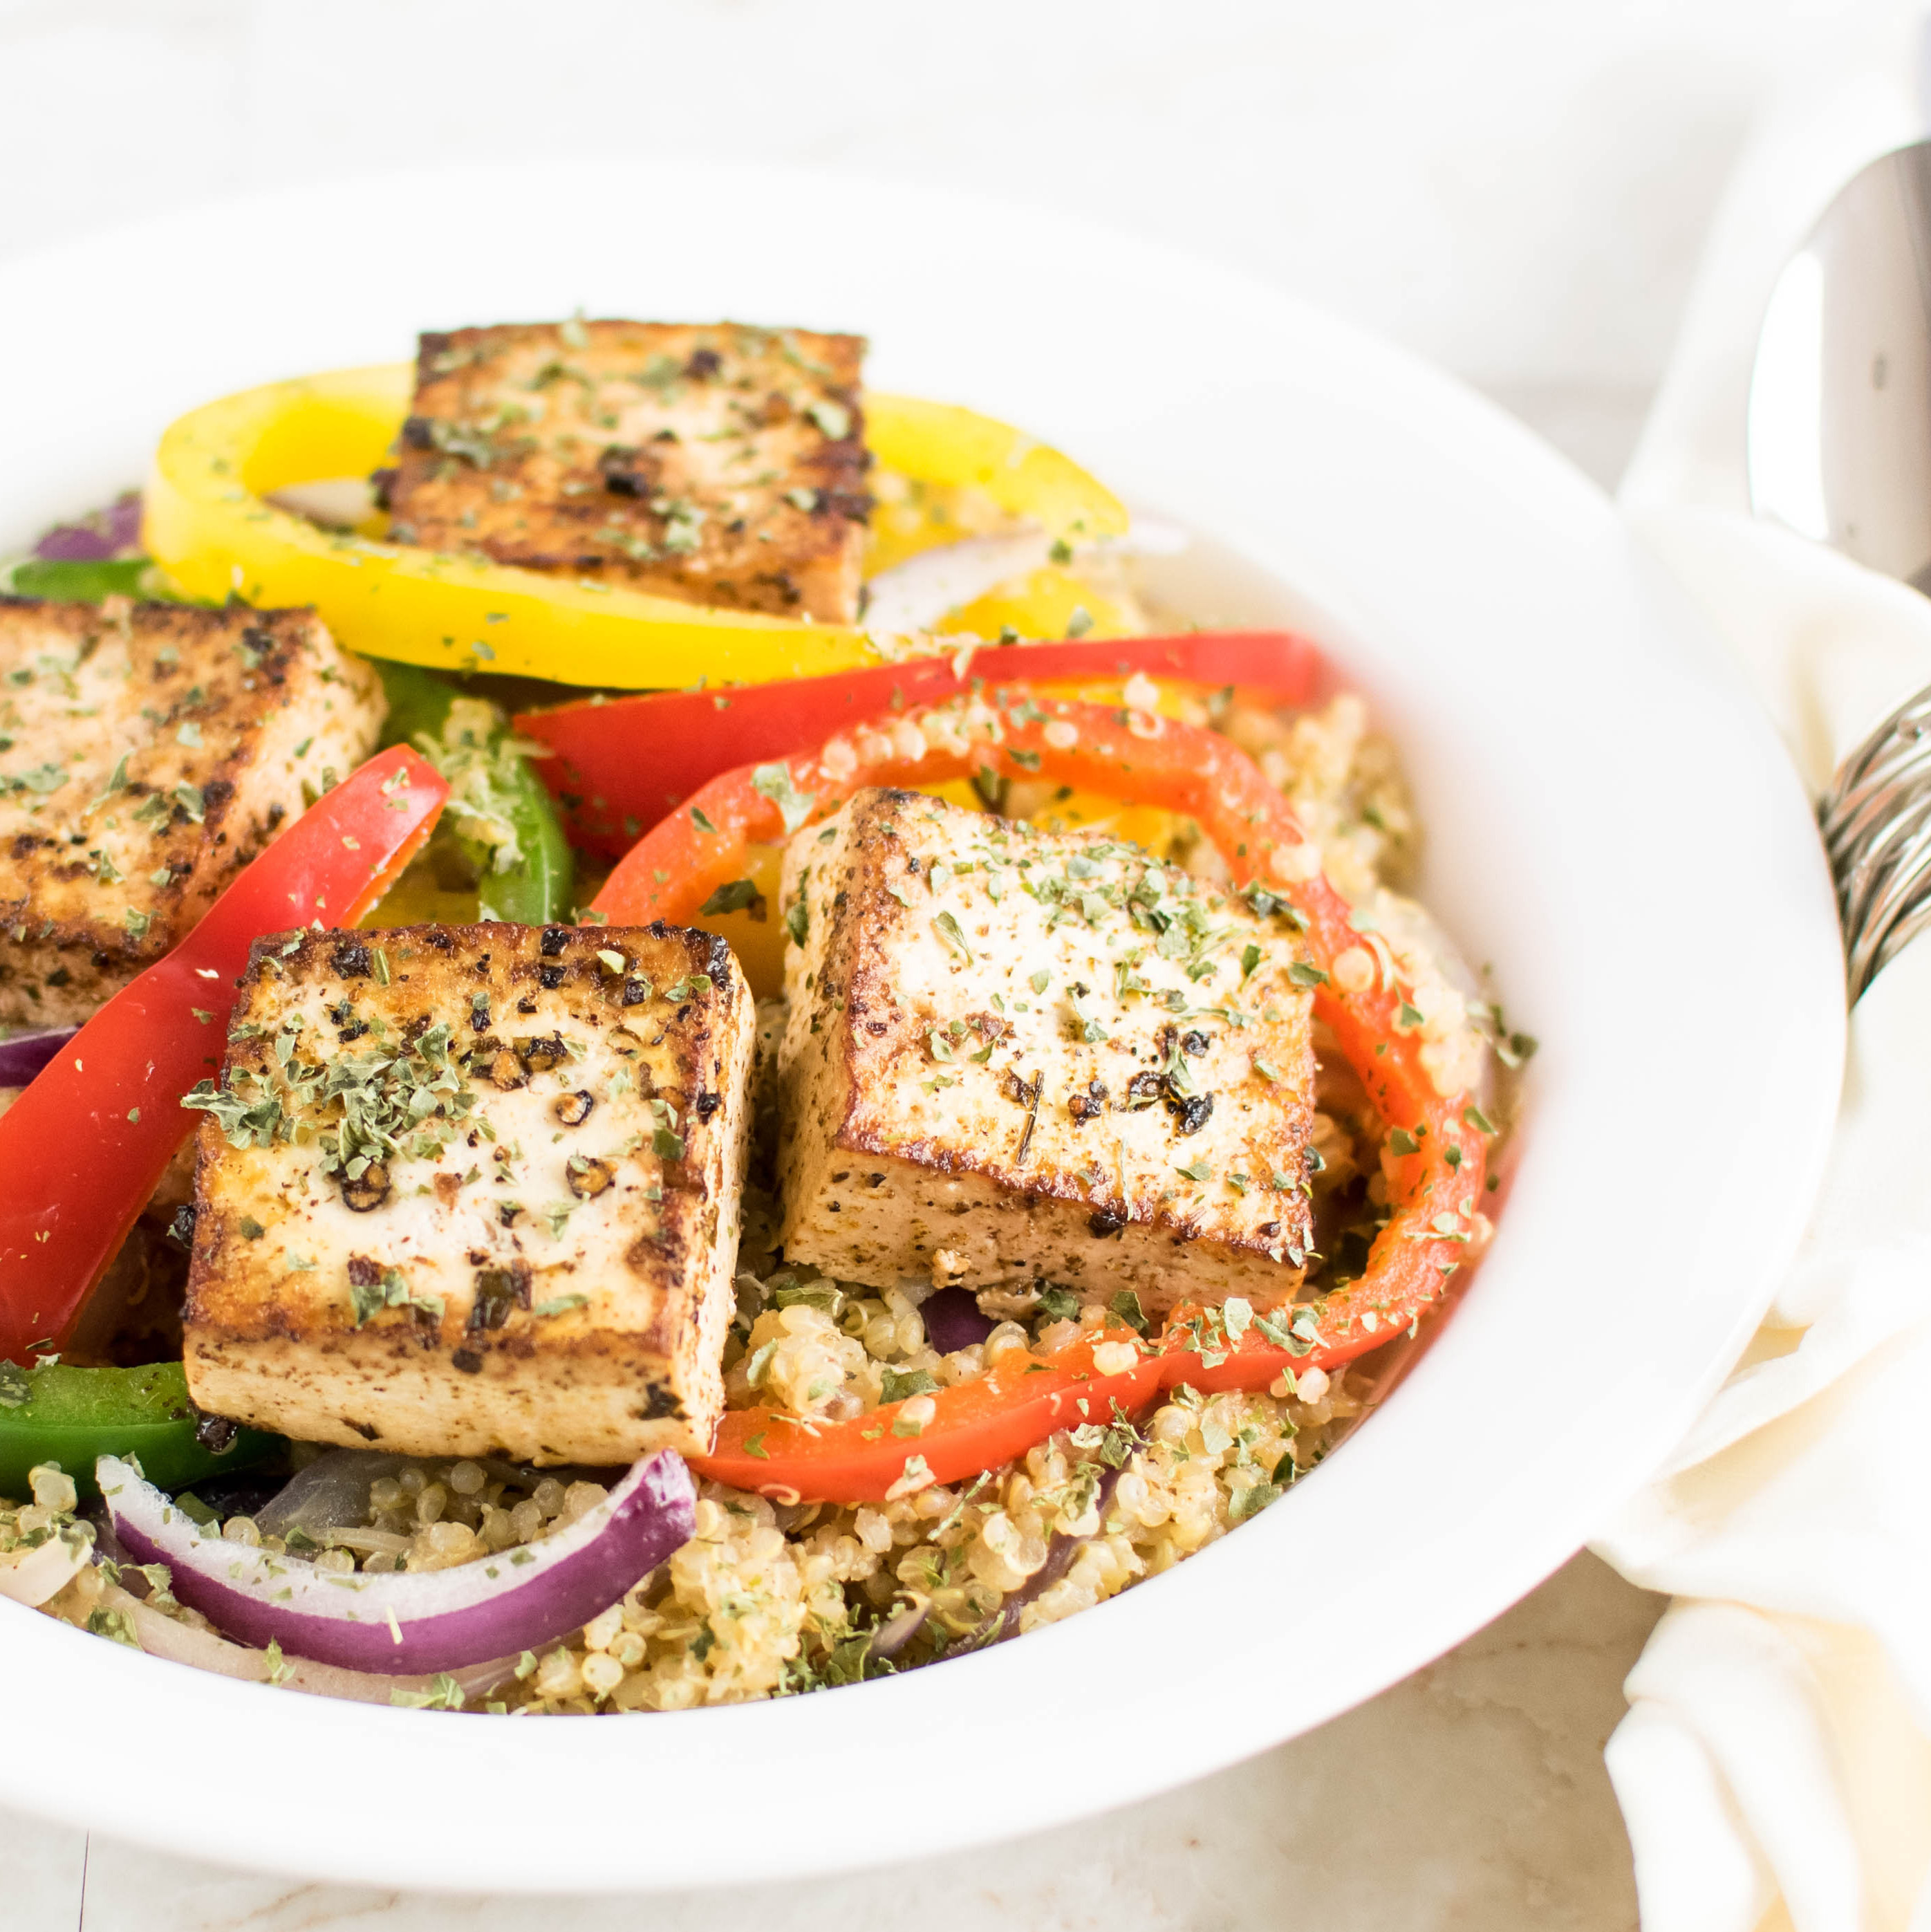 Red Wine Vinegar Tofu with Quinoa is shown plated in this image | kiipfit.com